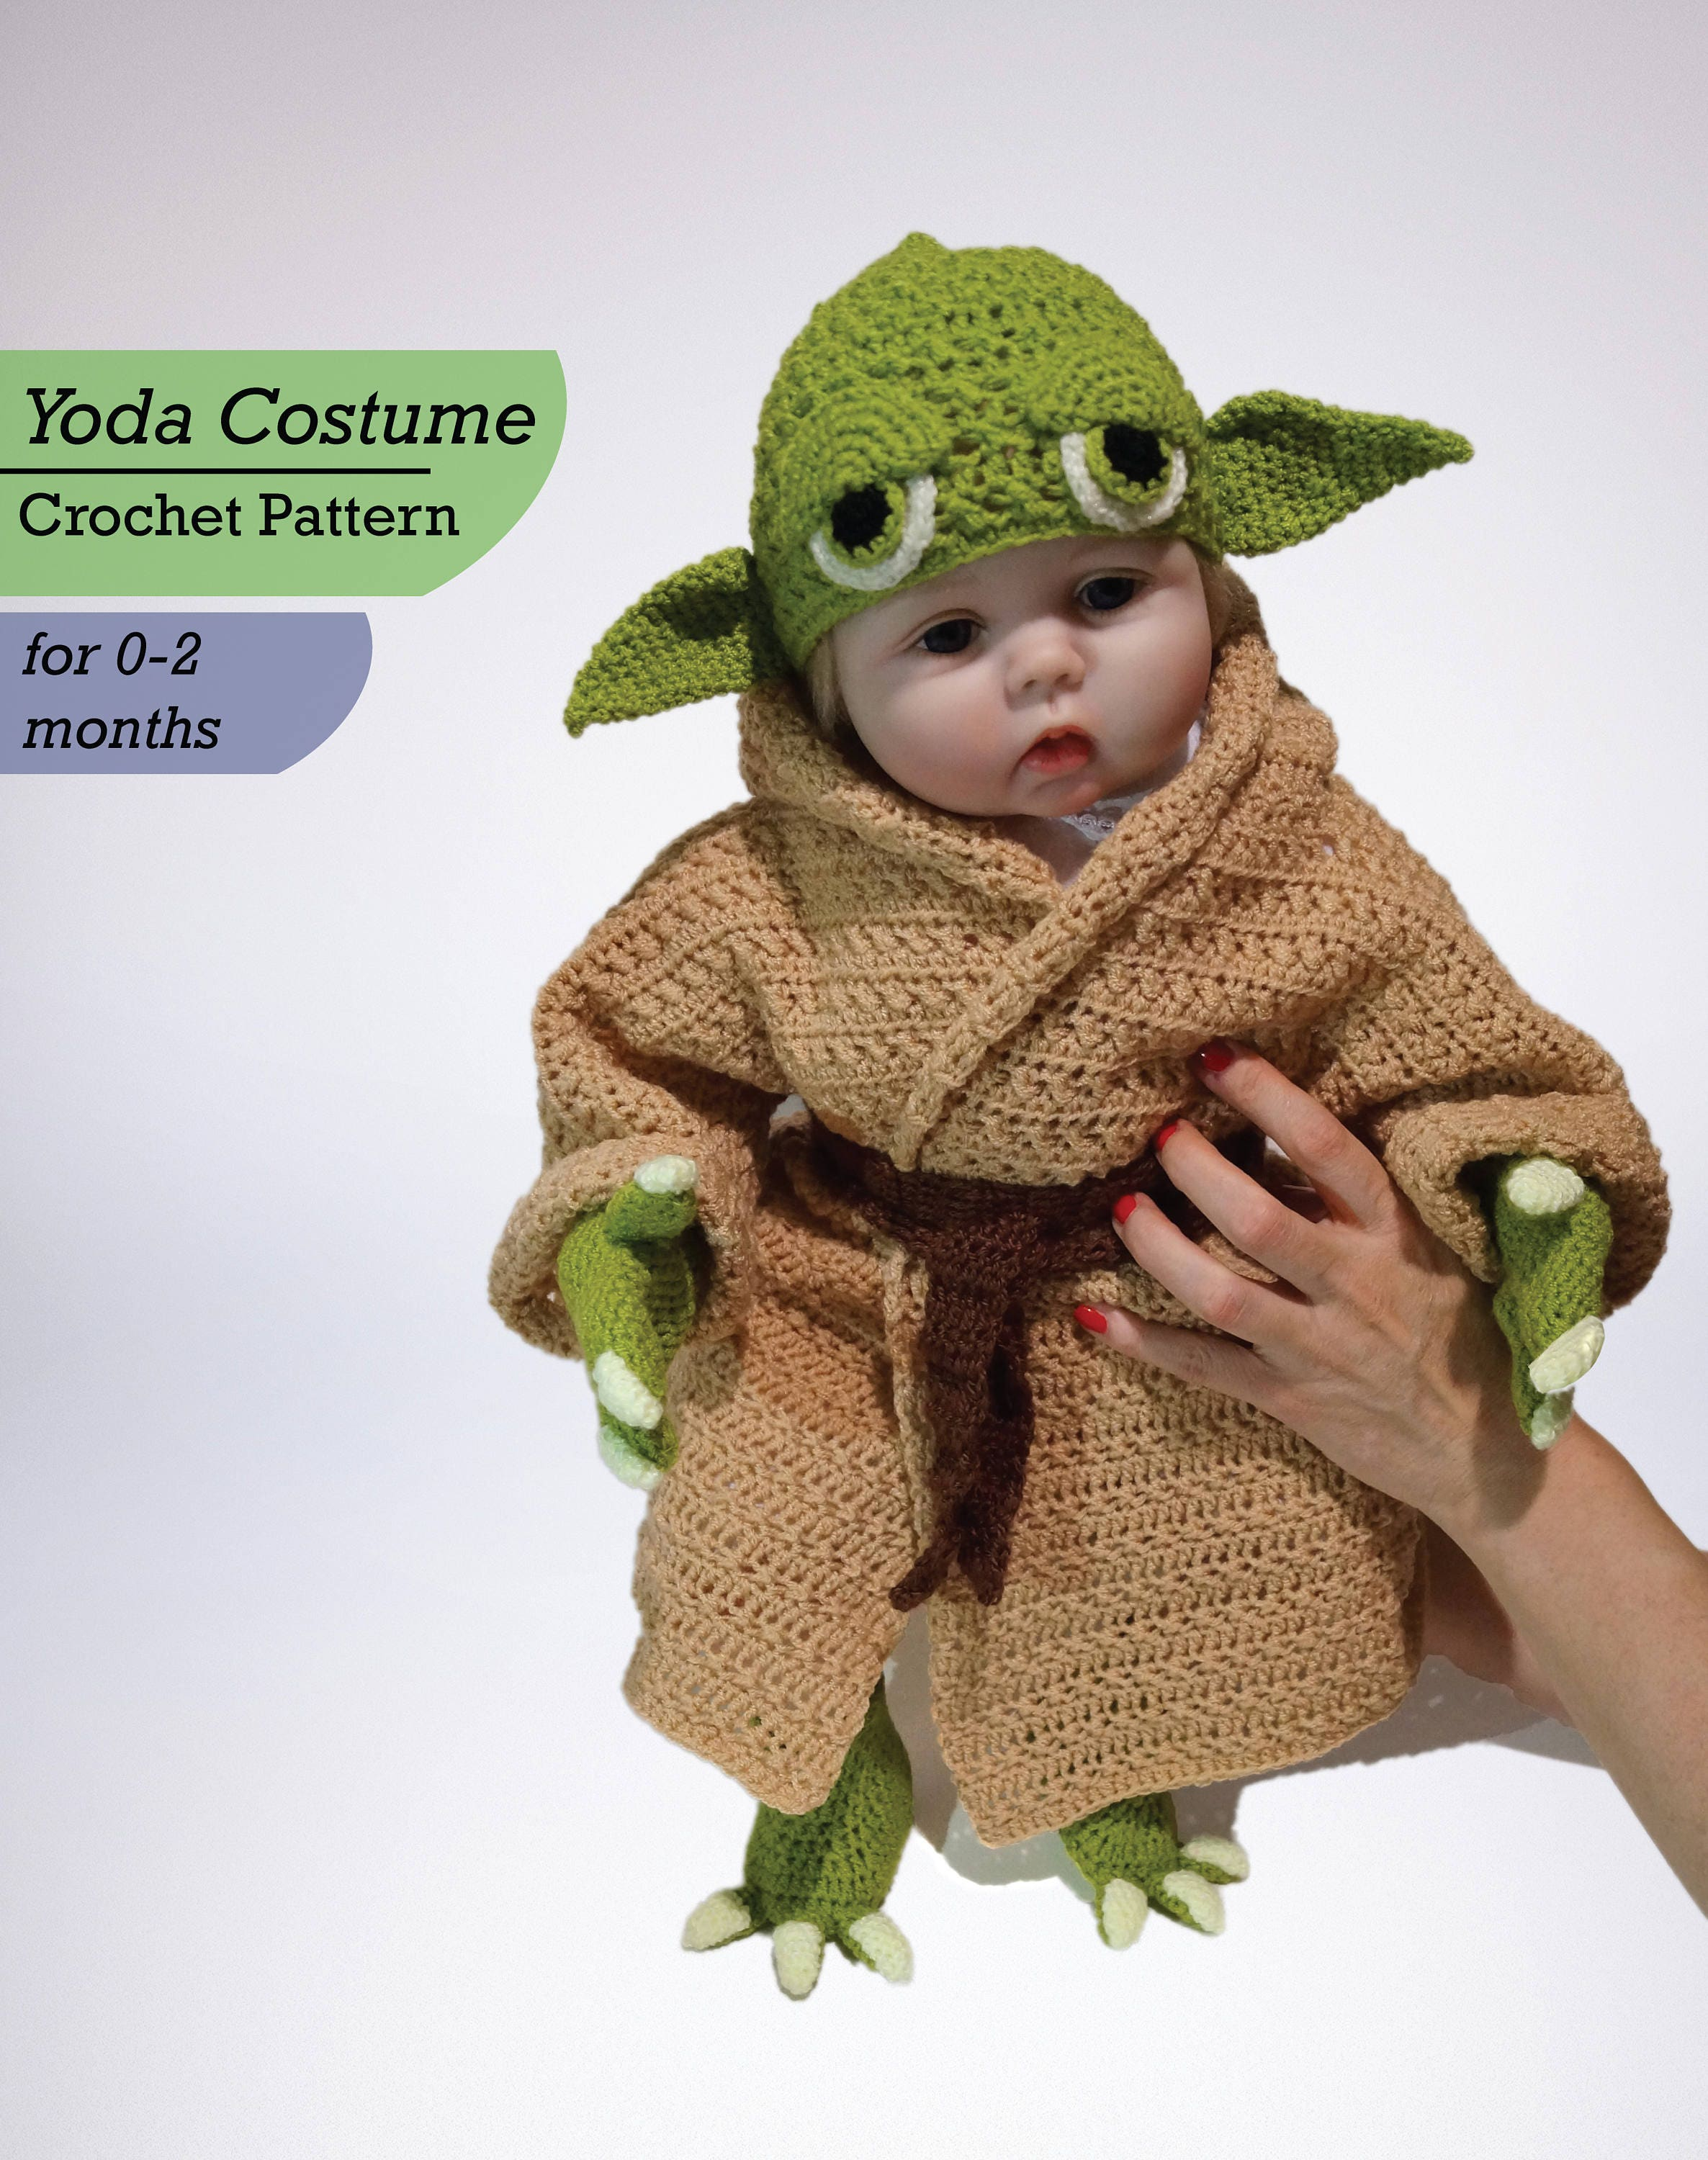 Infant yoda crochet costume pattern pdf star wars costume zoom bankloansurffo Gallery